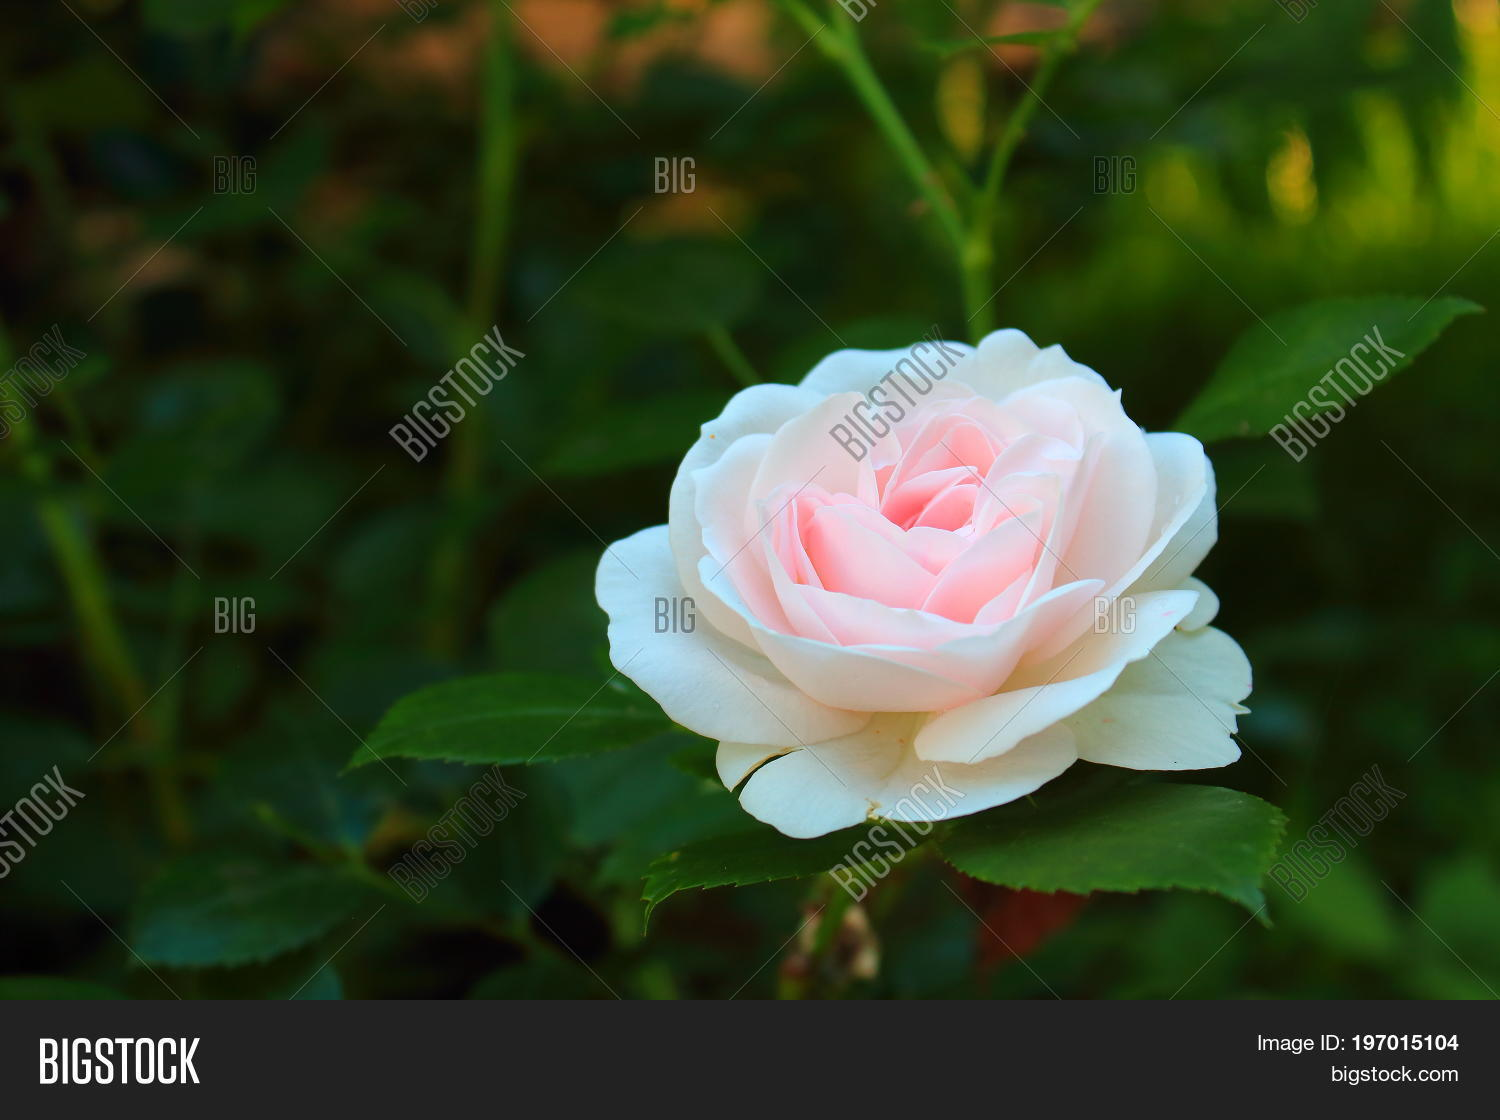 Delicate Pink Rose Image Photo Free Trial Bigstock